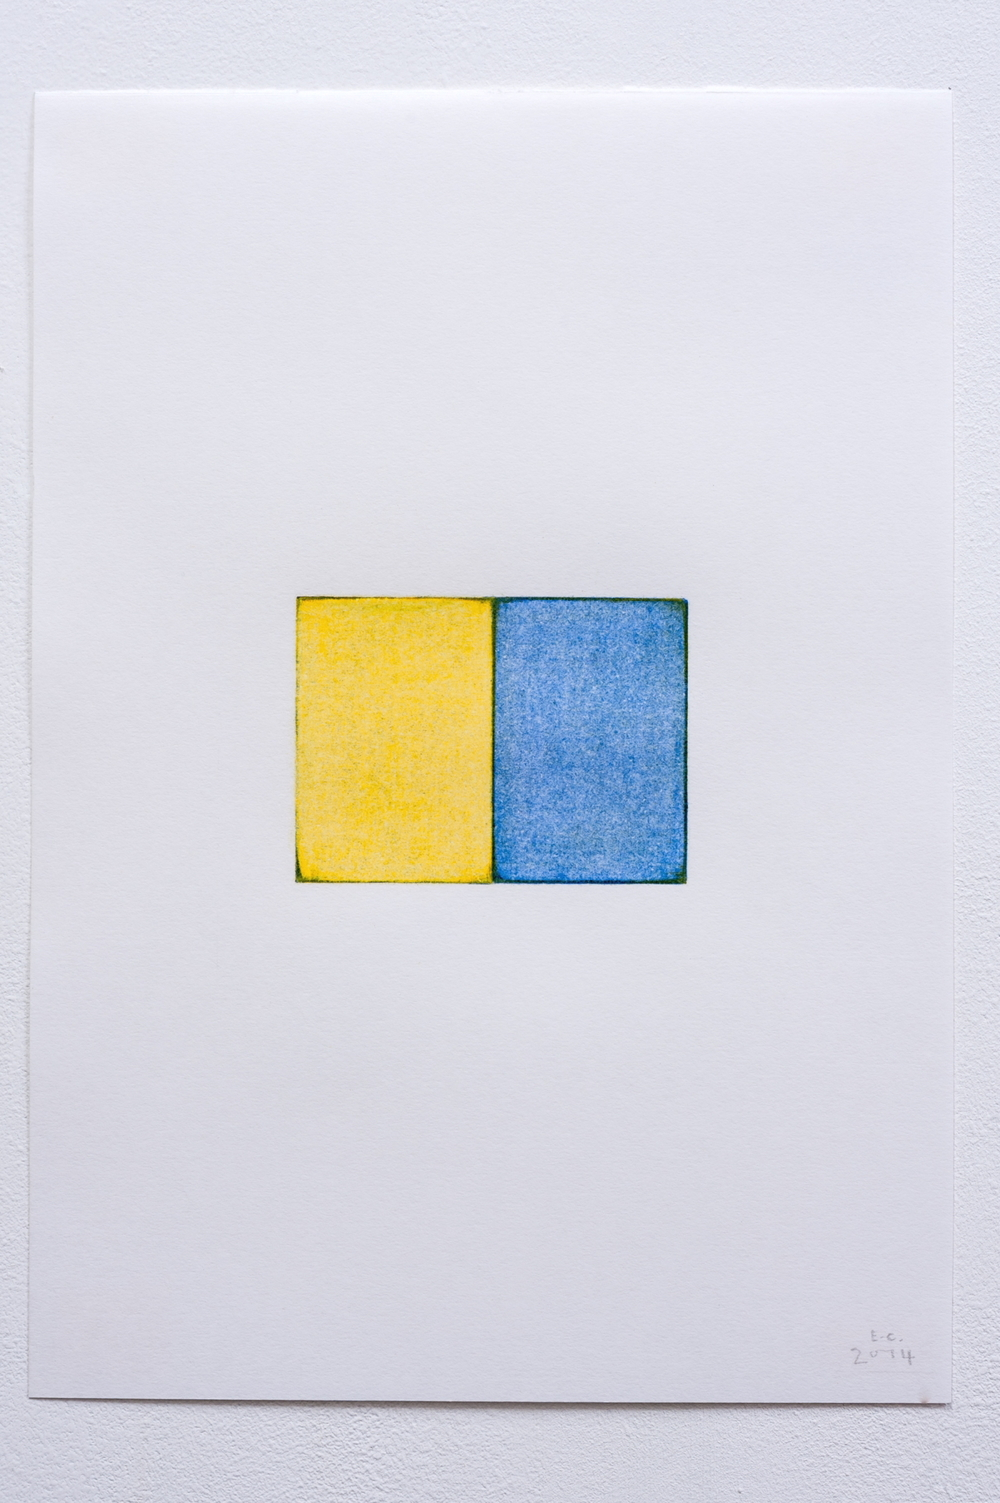 Untitled, 2014, Coloured Pencil on Paper, 28cm x 19.5cm(paper size)